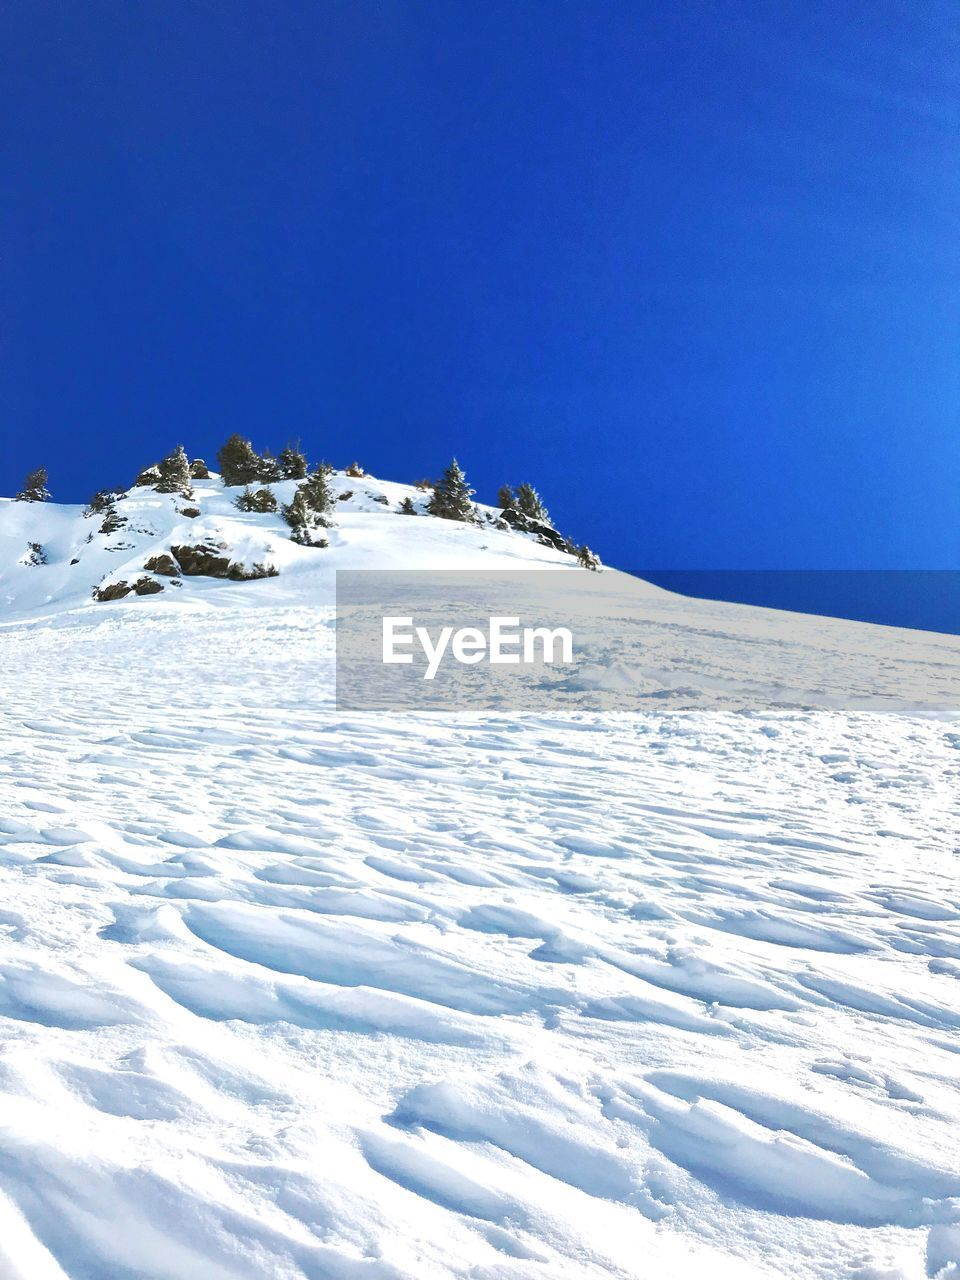 snow, winter, cold temperature, nature, tranquil scene, tranquility, beauty in nature, blue, scenics, white color, outdoors, clear sky, day, no people, mountain, landscape, sky